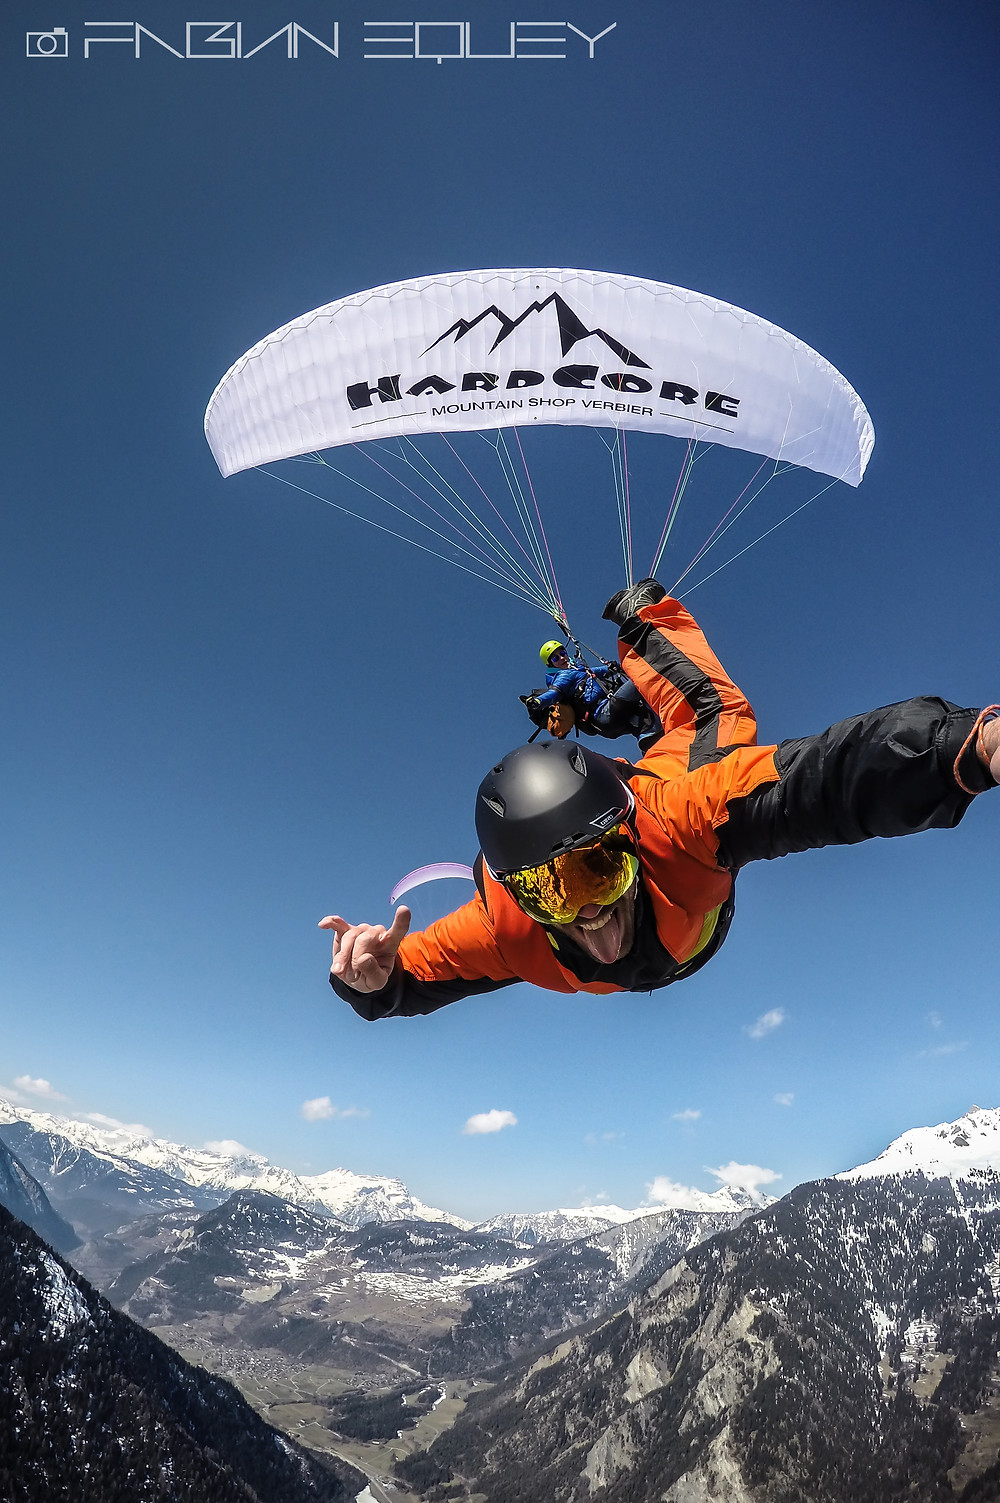 Paragliding BASE jump this morning over Verbier